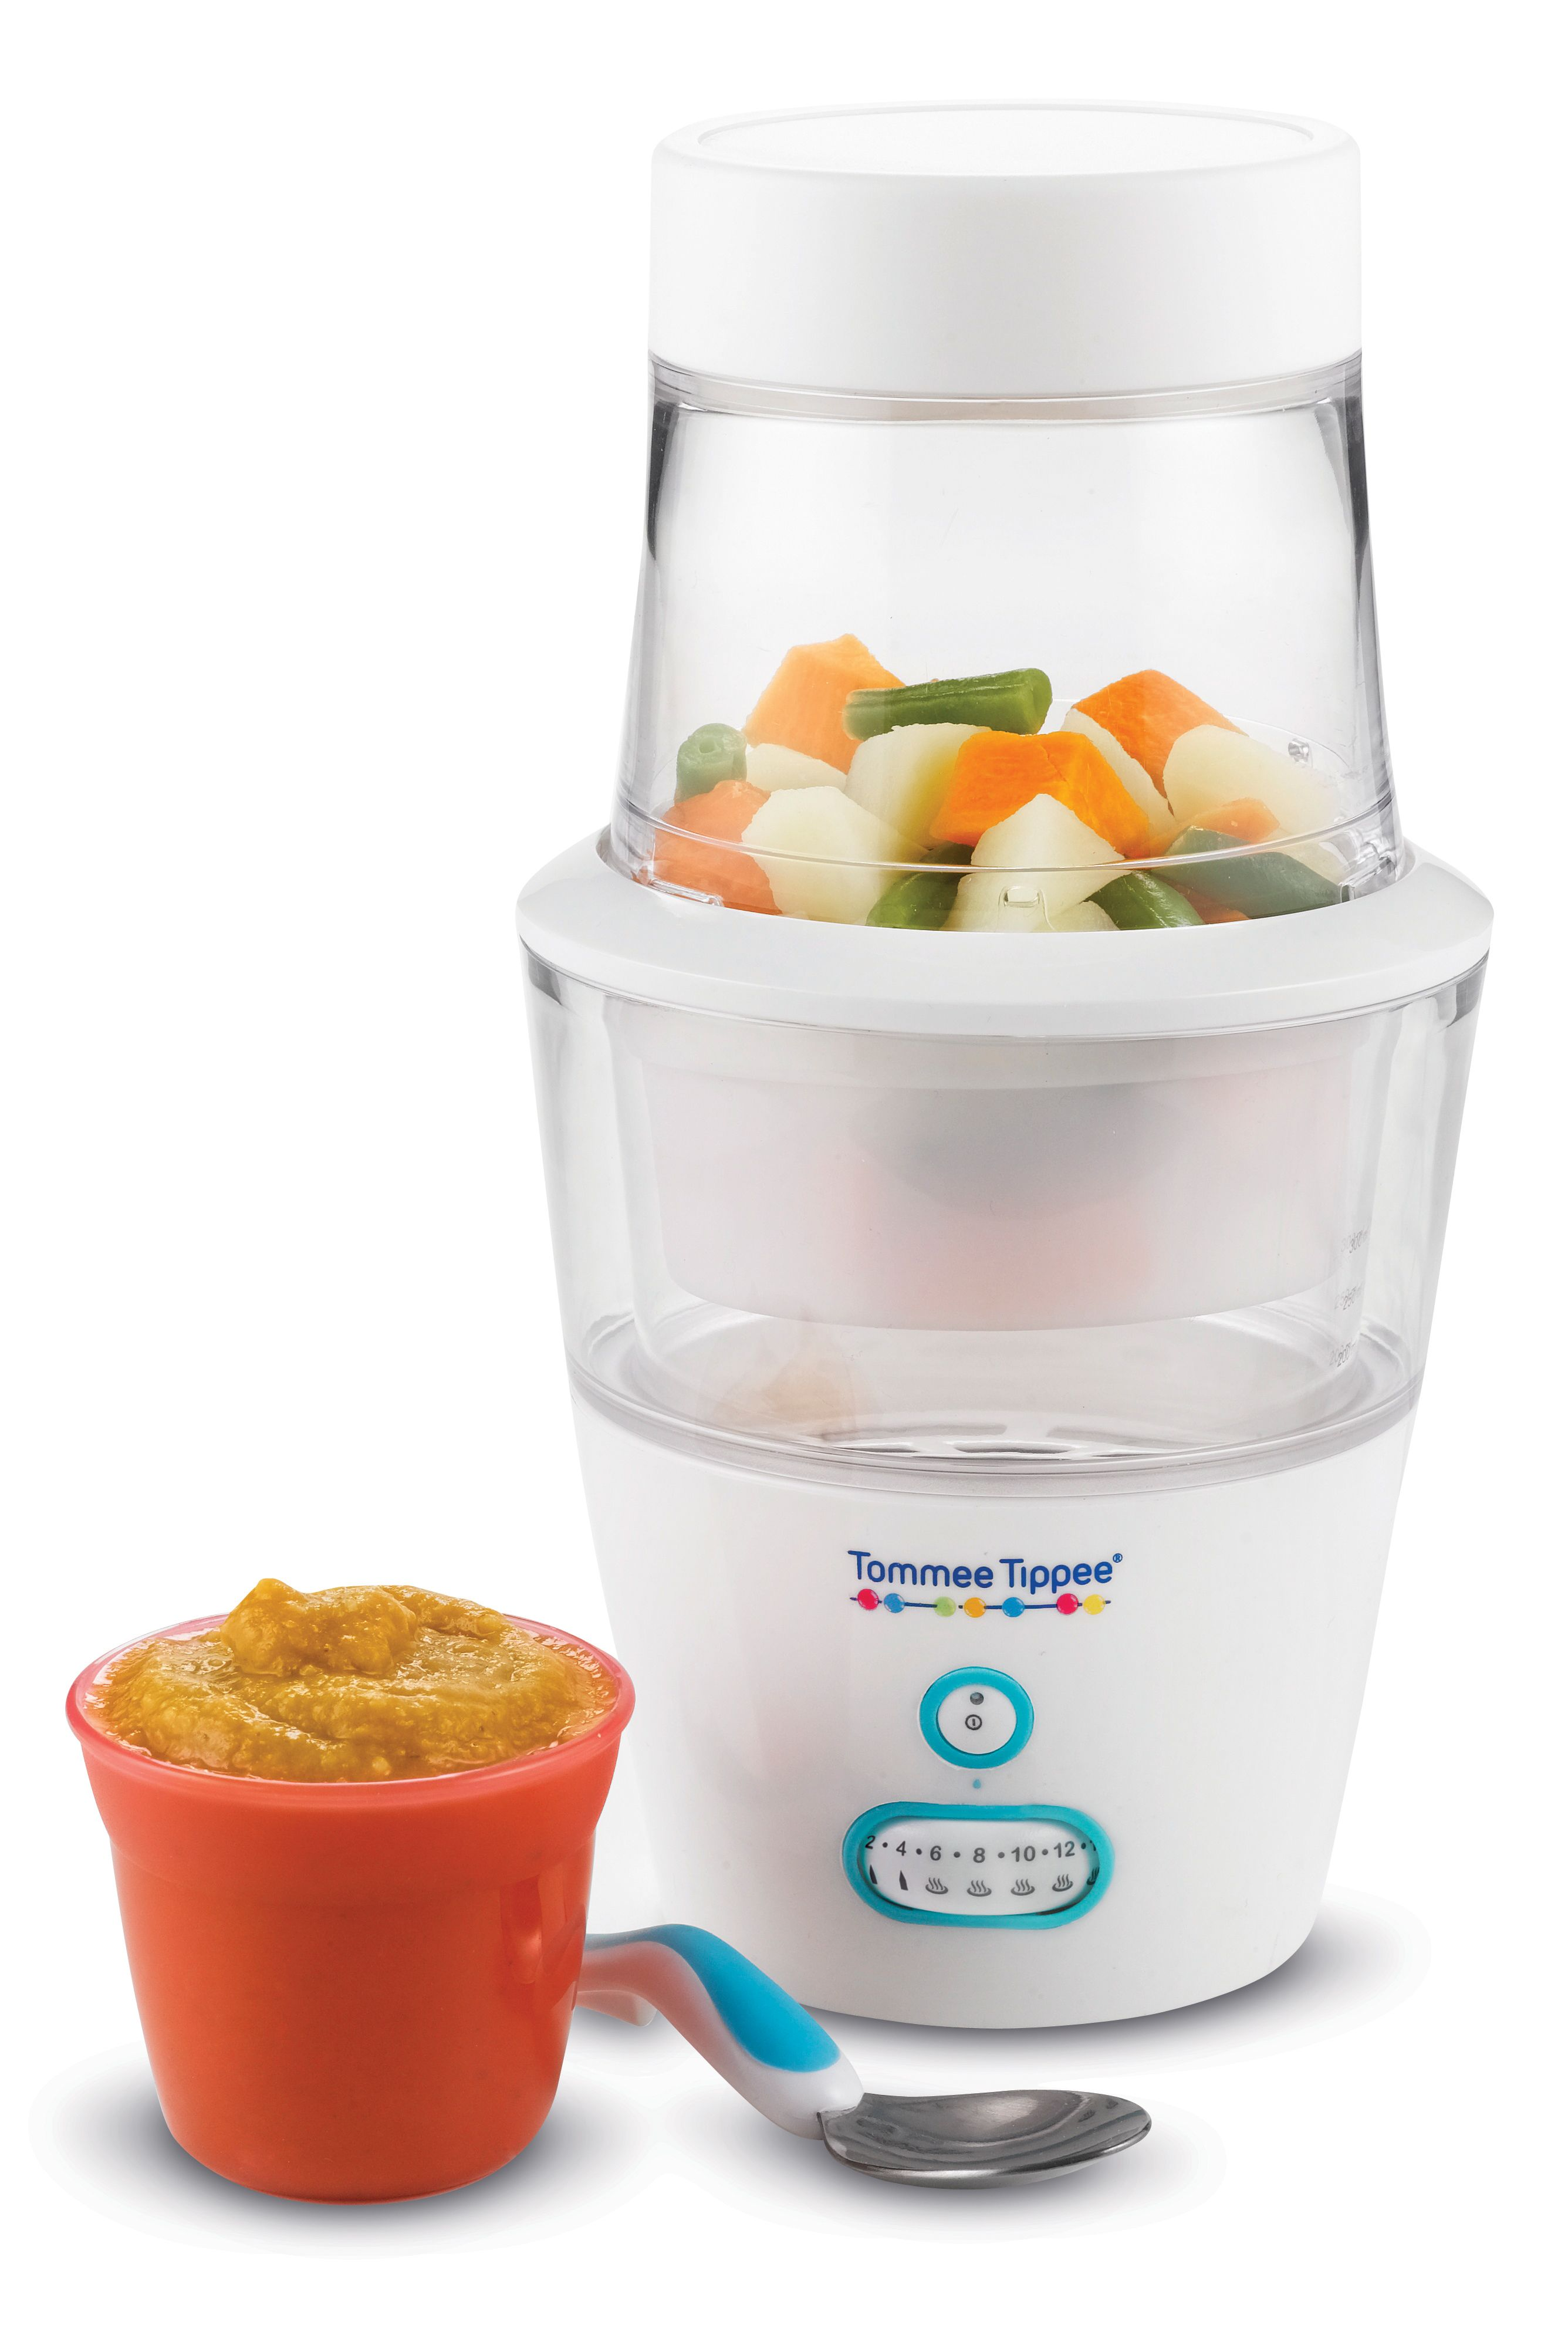 Tommee Tippee All In One Food Processor Tommeetippeeau